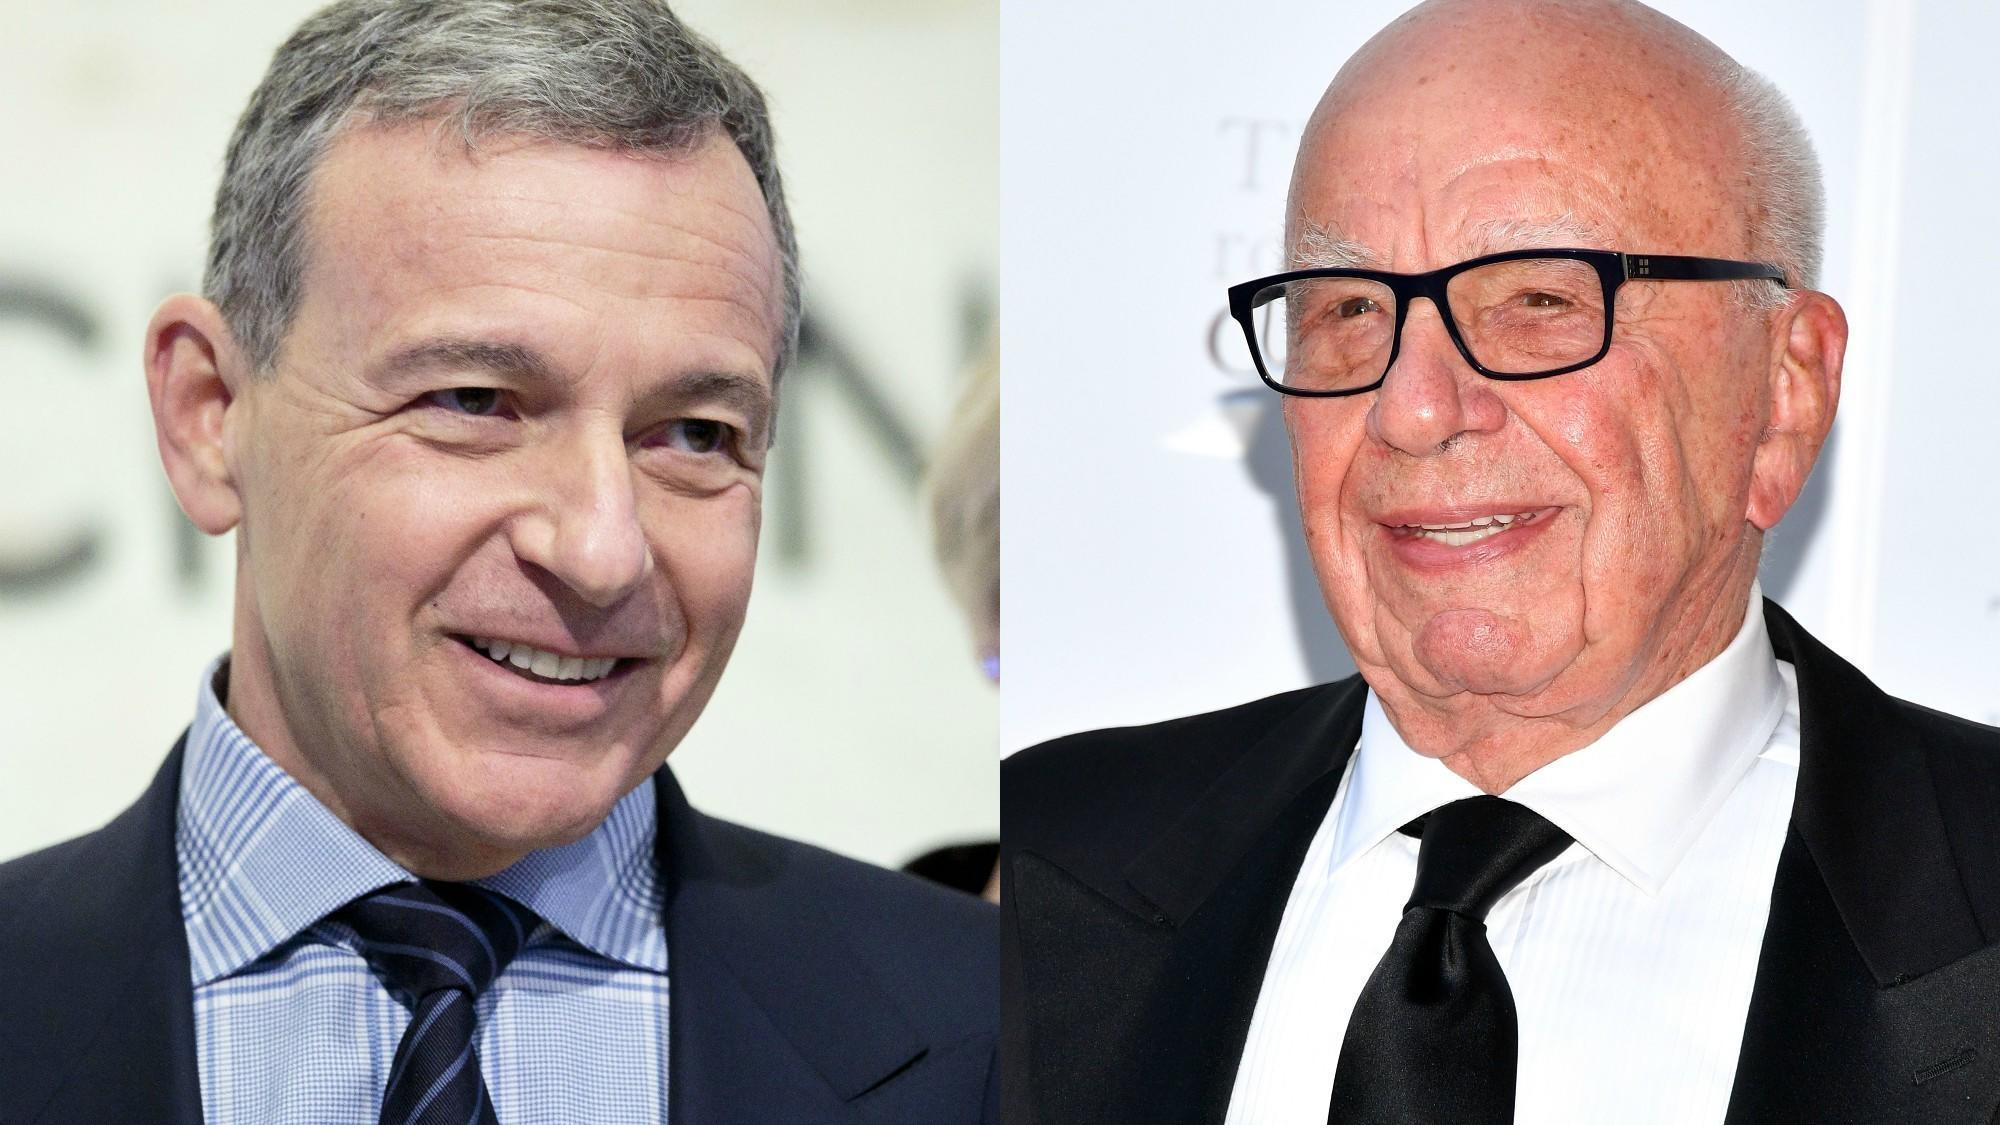 Disney's deal to buy Fox studio could bring substantial layoffs, analysts say